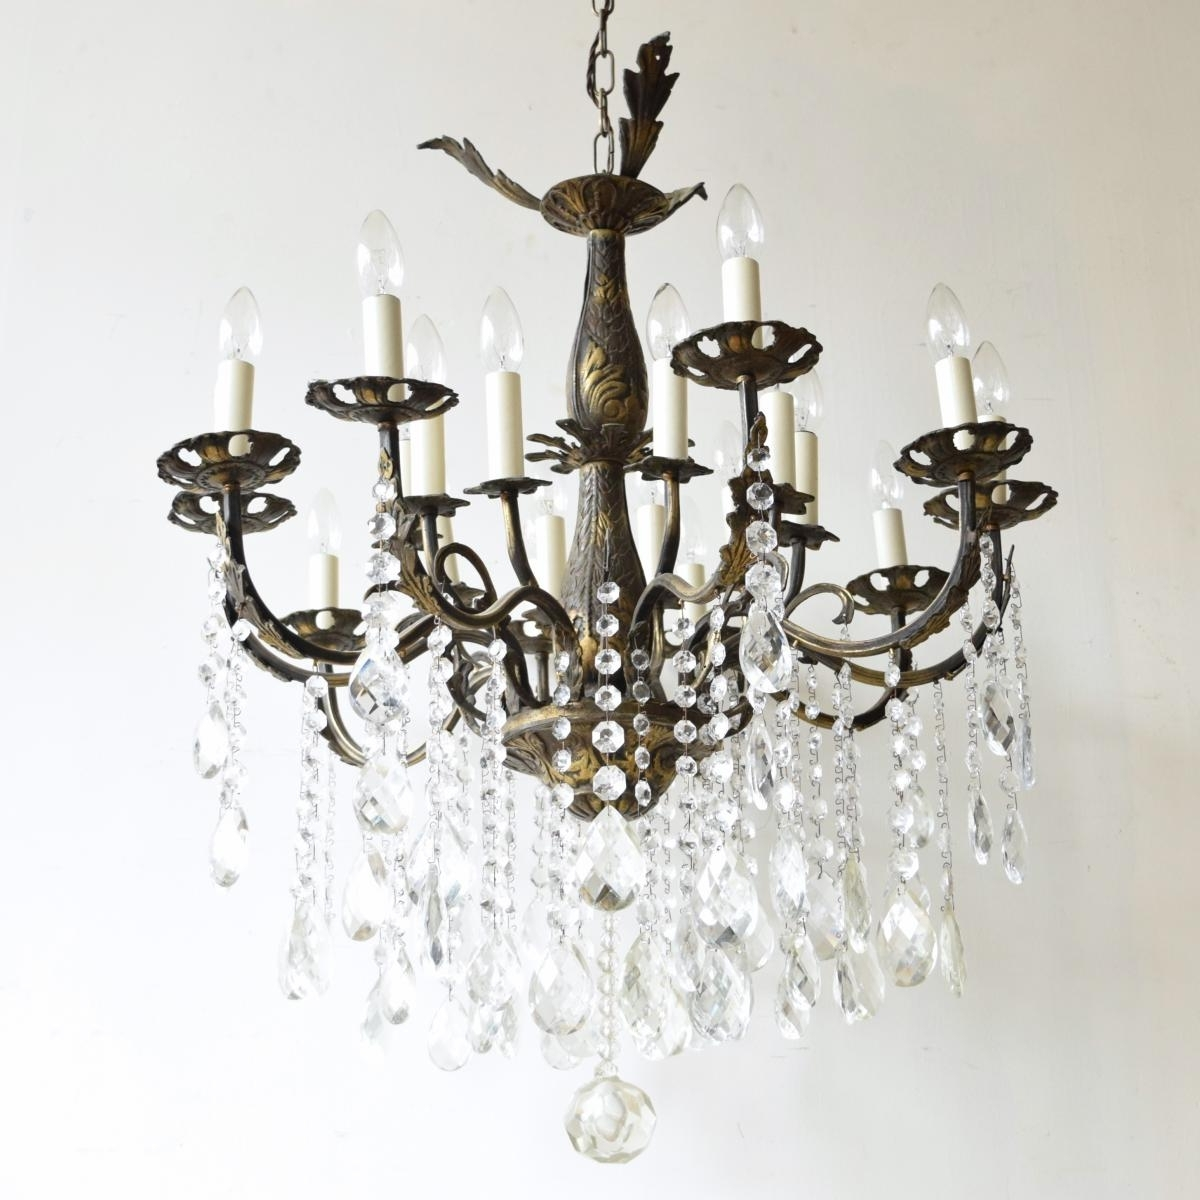 Popular Large Vintage French 16 Light Brass Chandelier For Sale At Pamono With Vintage French Chandeliers (View 4 of 20)